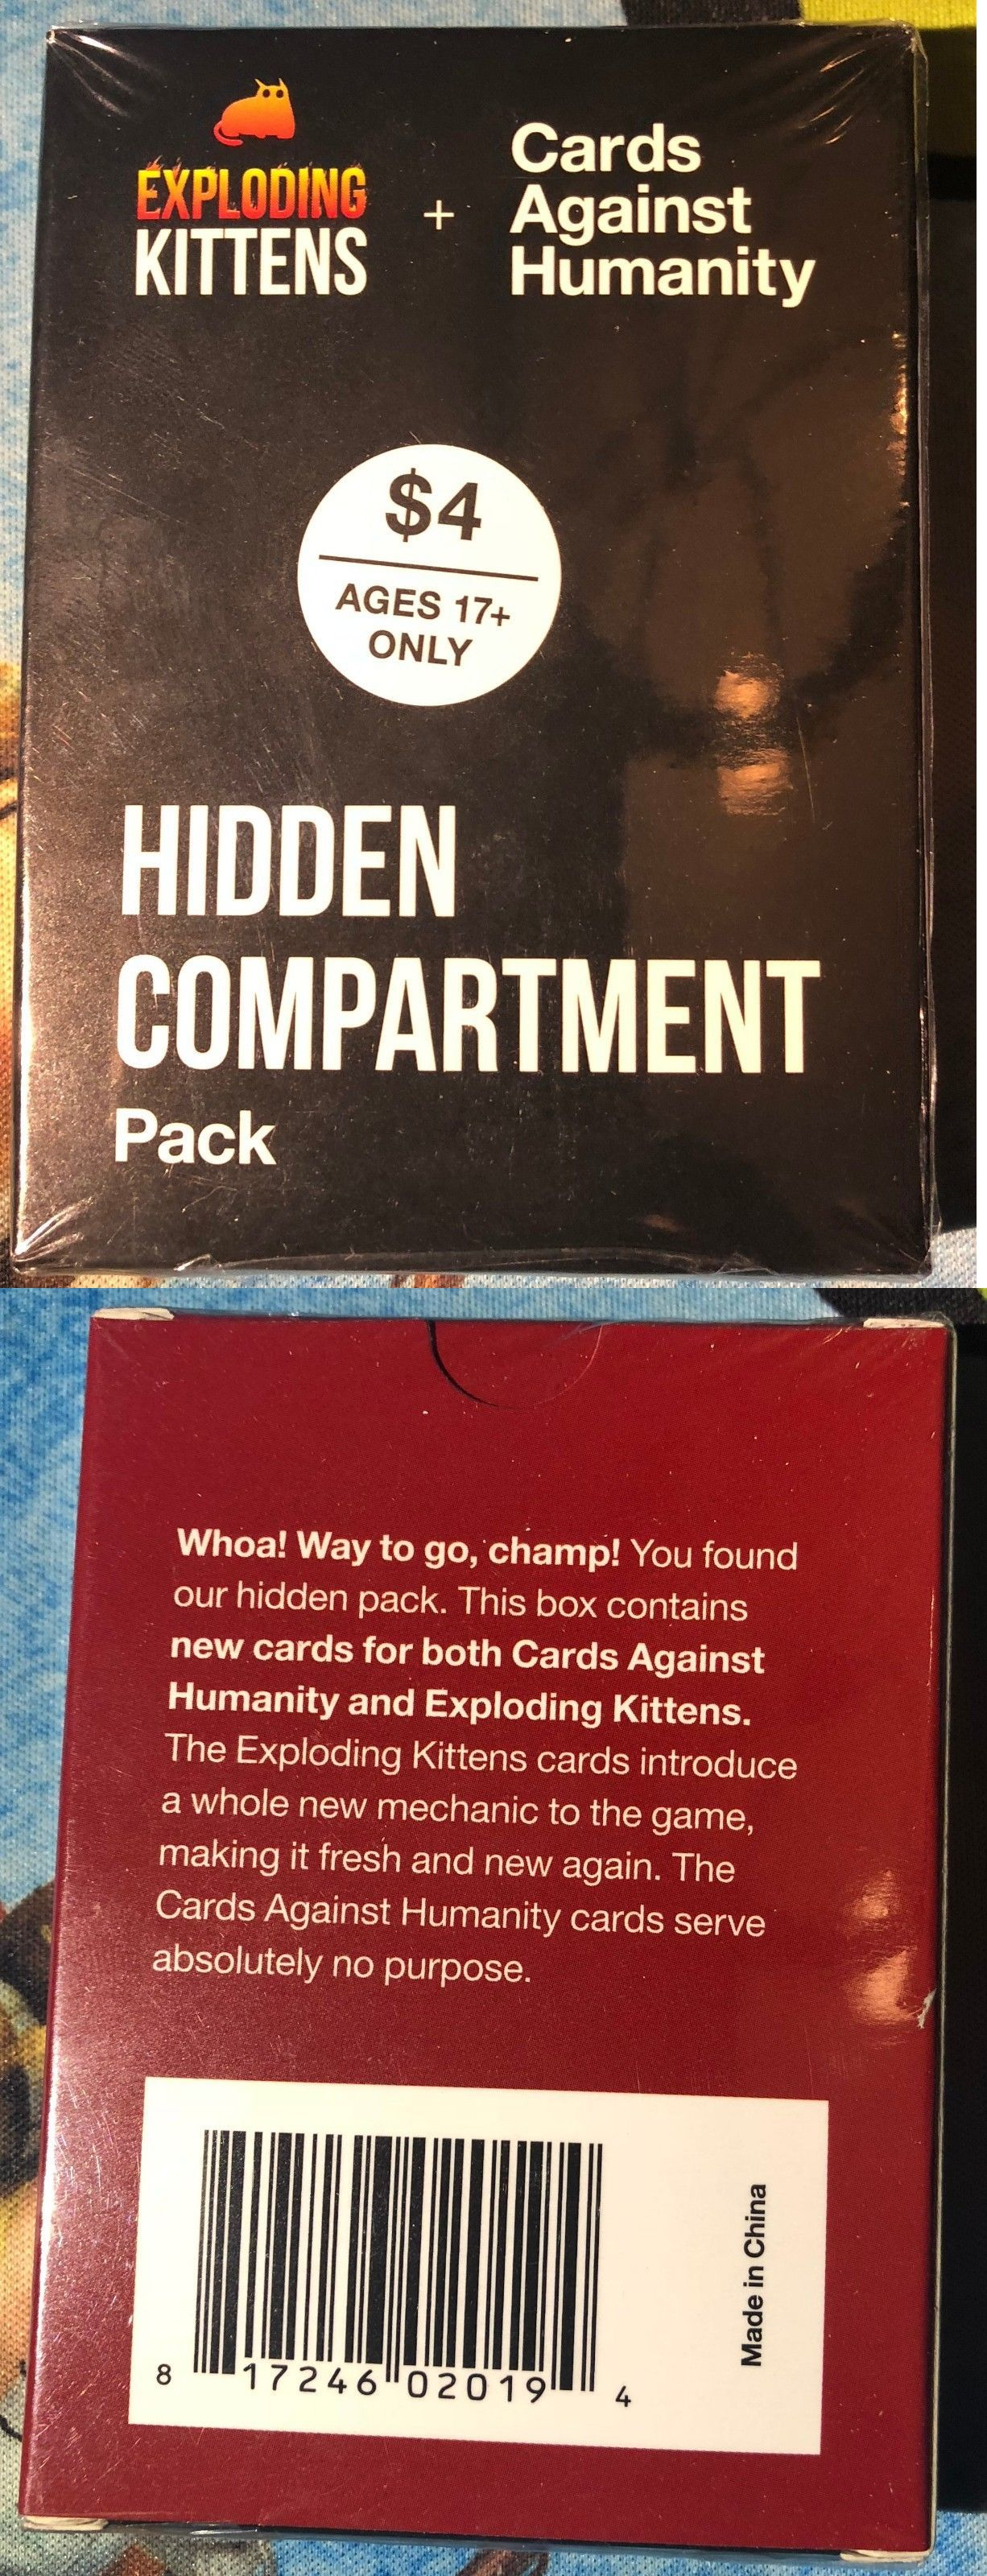 Games 233 Exploding Kittens Cards Against Humanity Hidden Compartment Pack New Buy It Now Exploding Kittens Hidden Compartments Cards Against Humanity